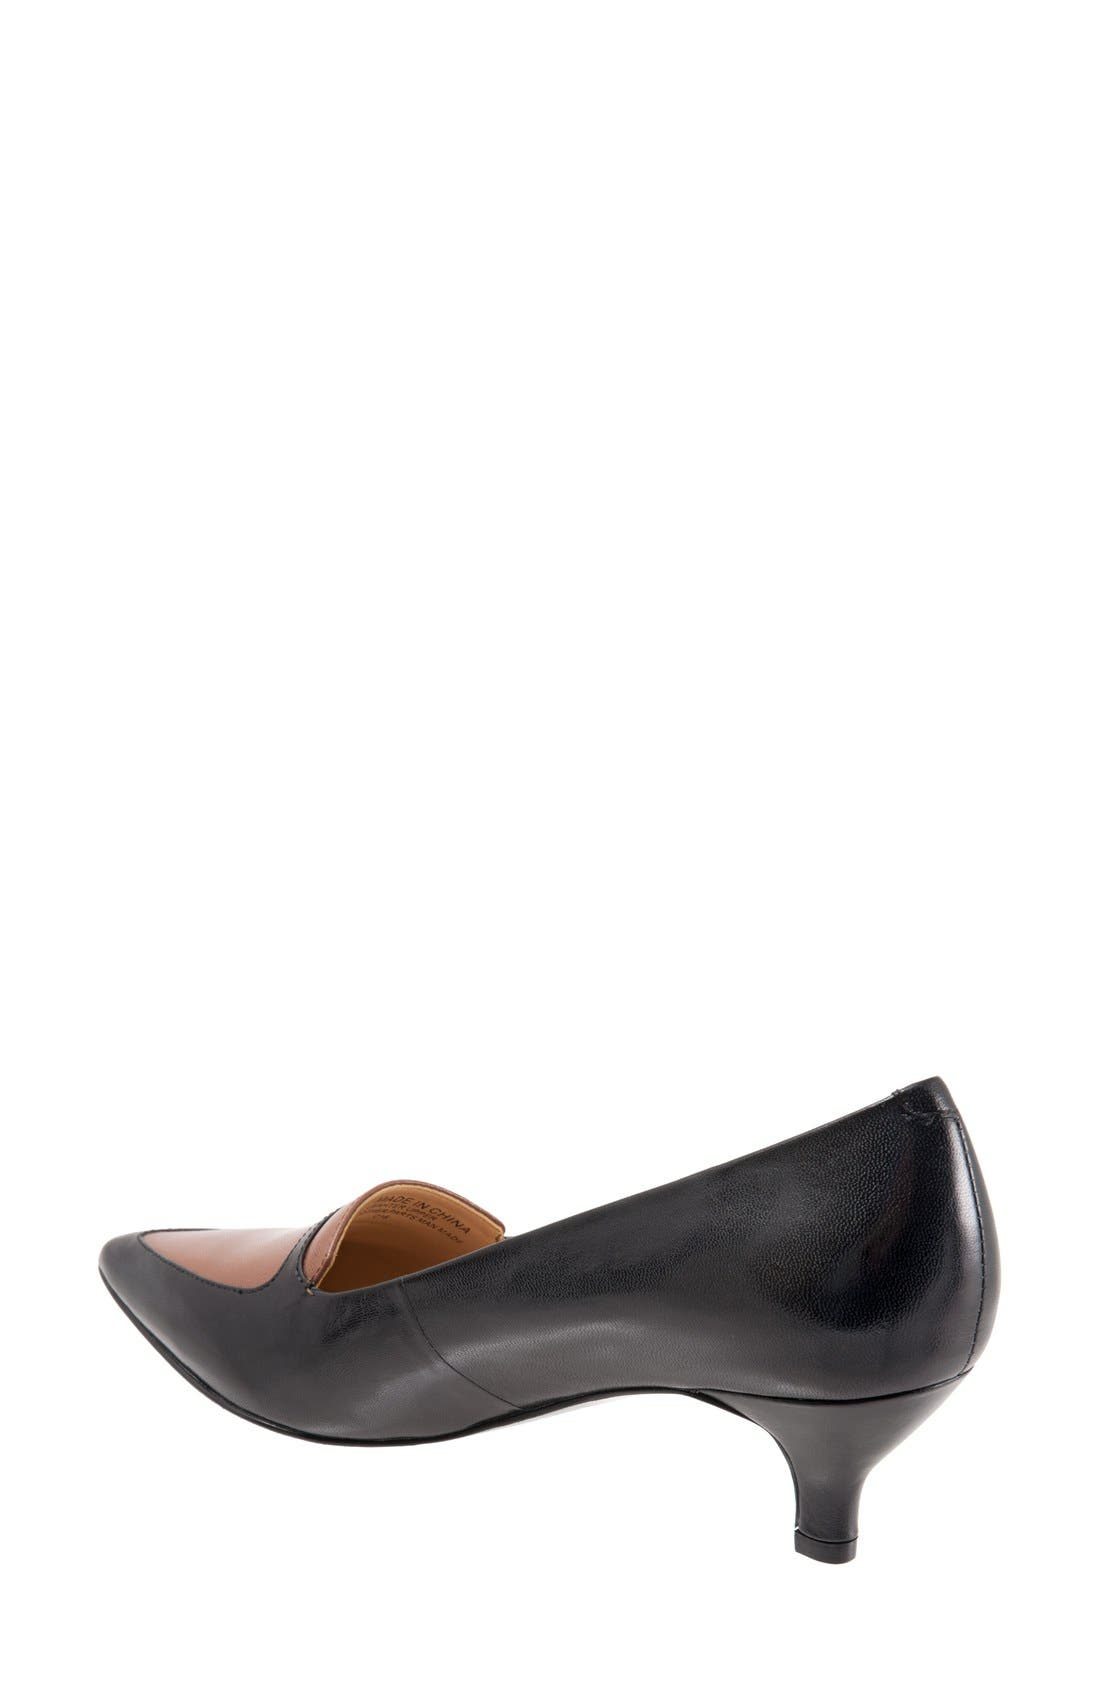 'Piper' Pointy Toe Pump,                             Alternate thumbnail 21, color,